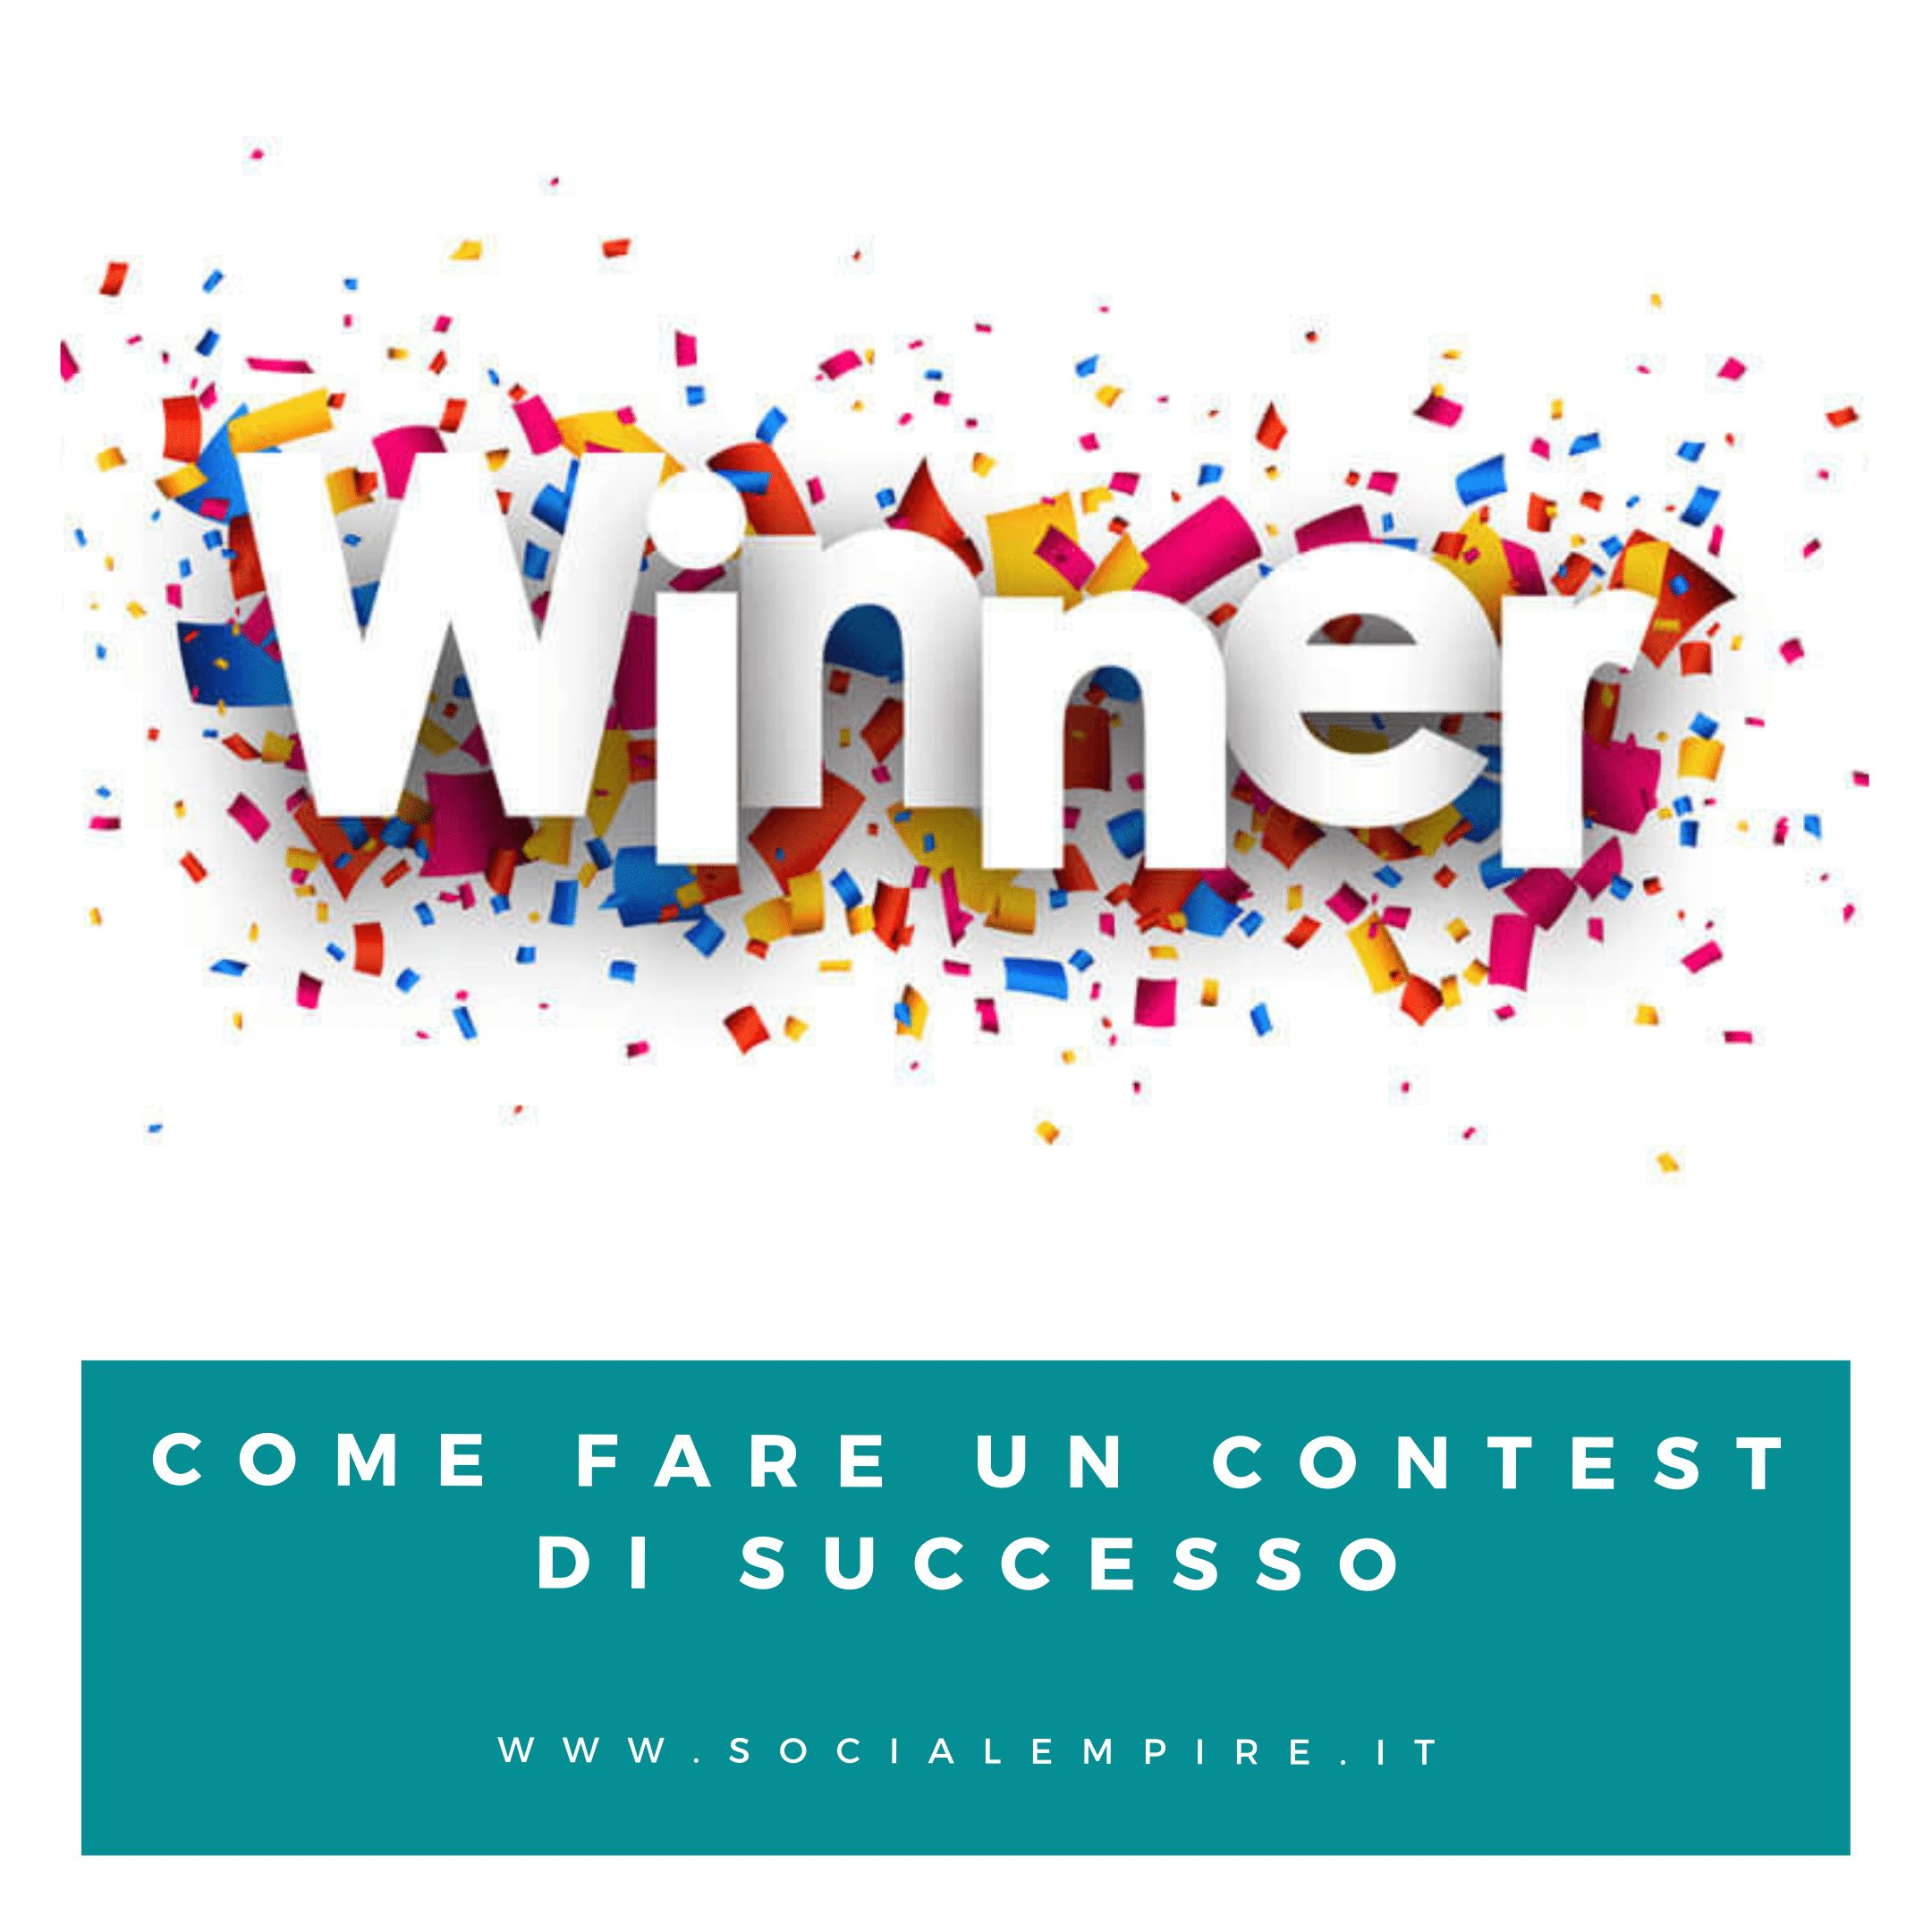 Come fare un Contest su Instagram